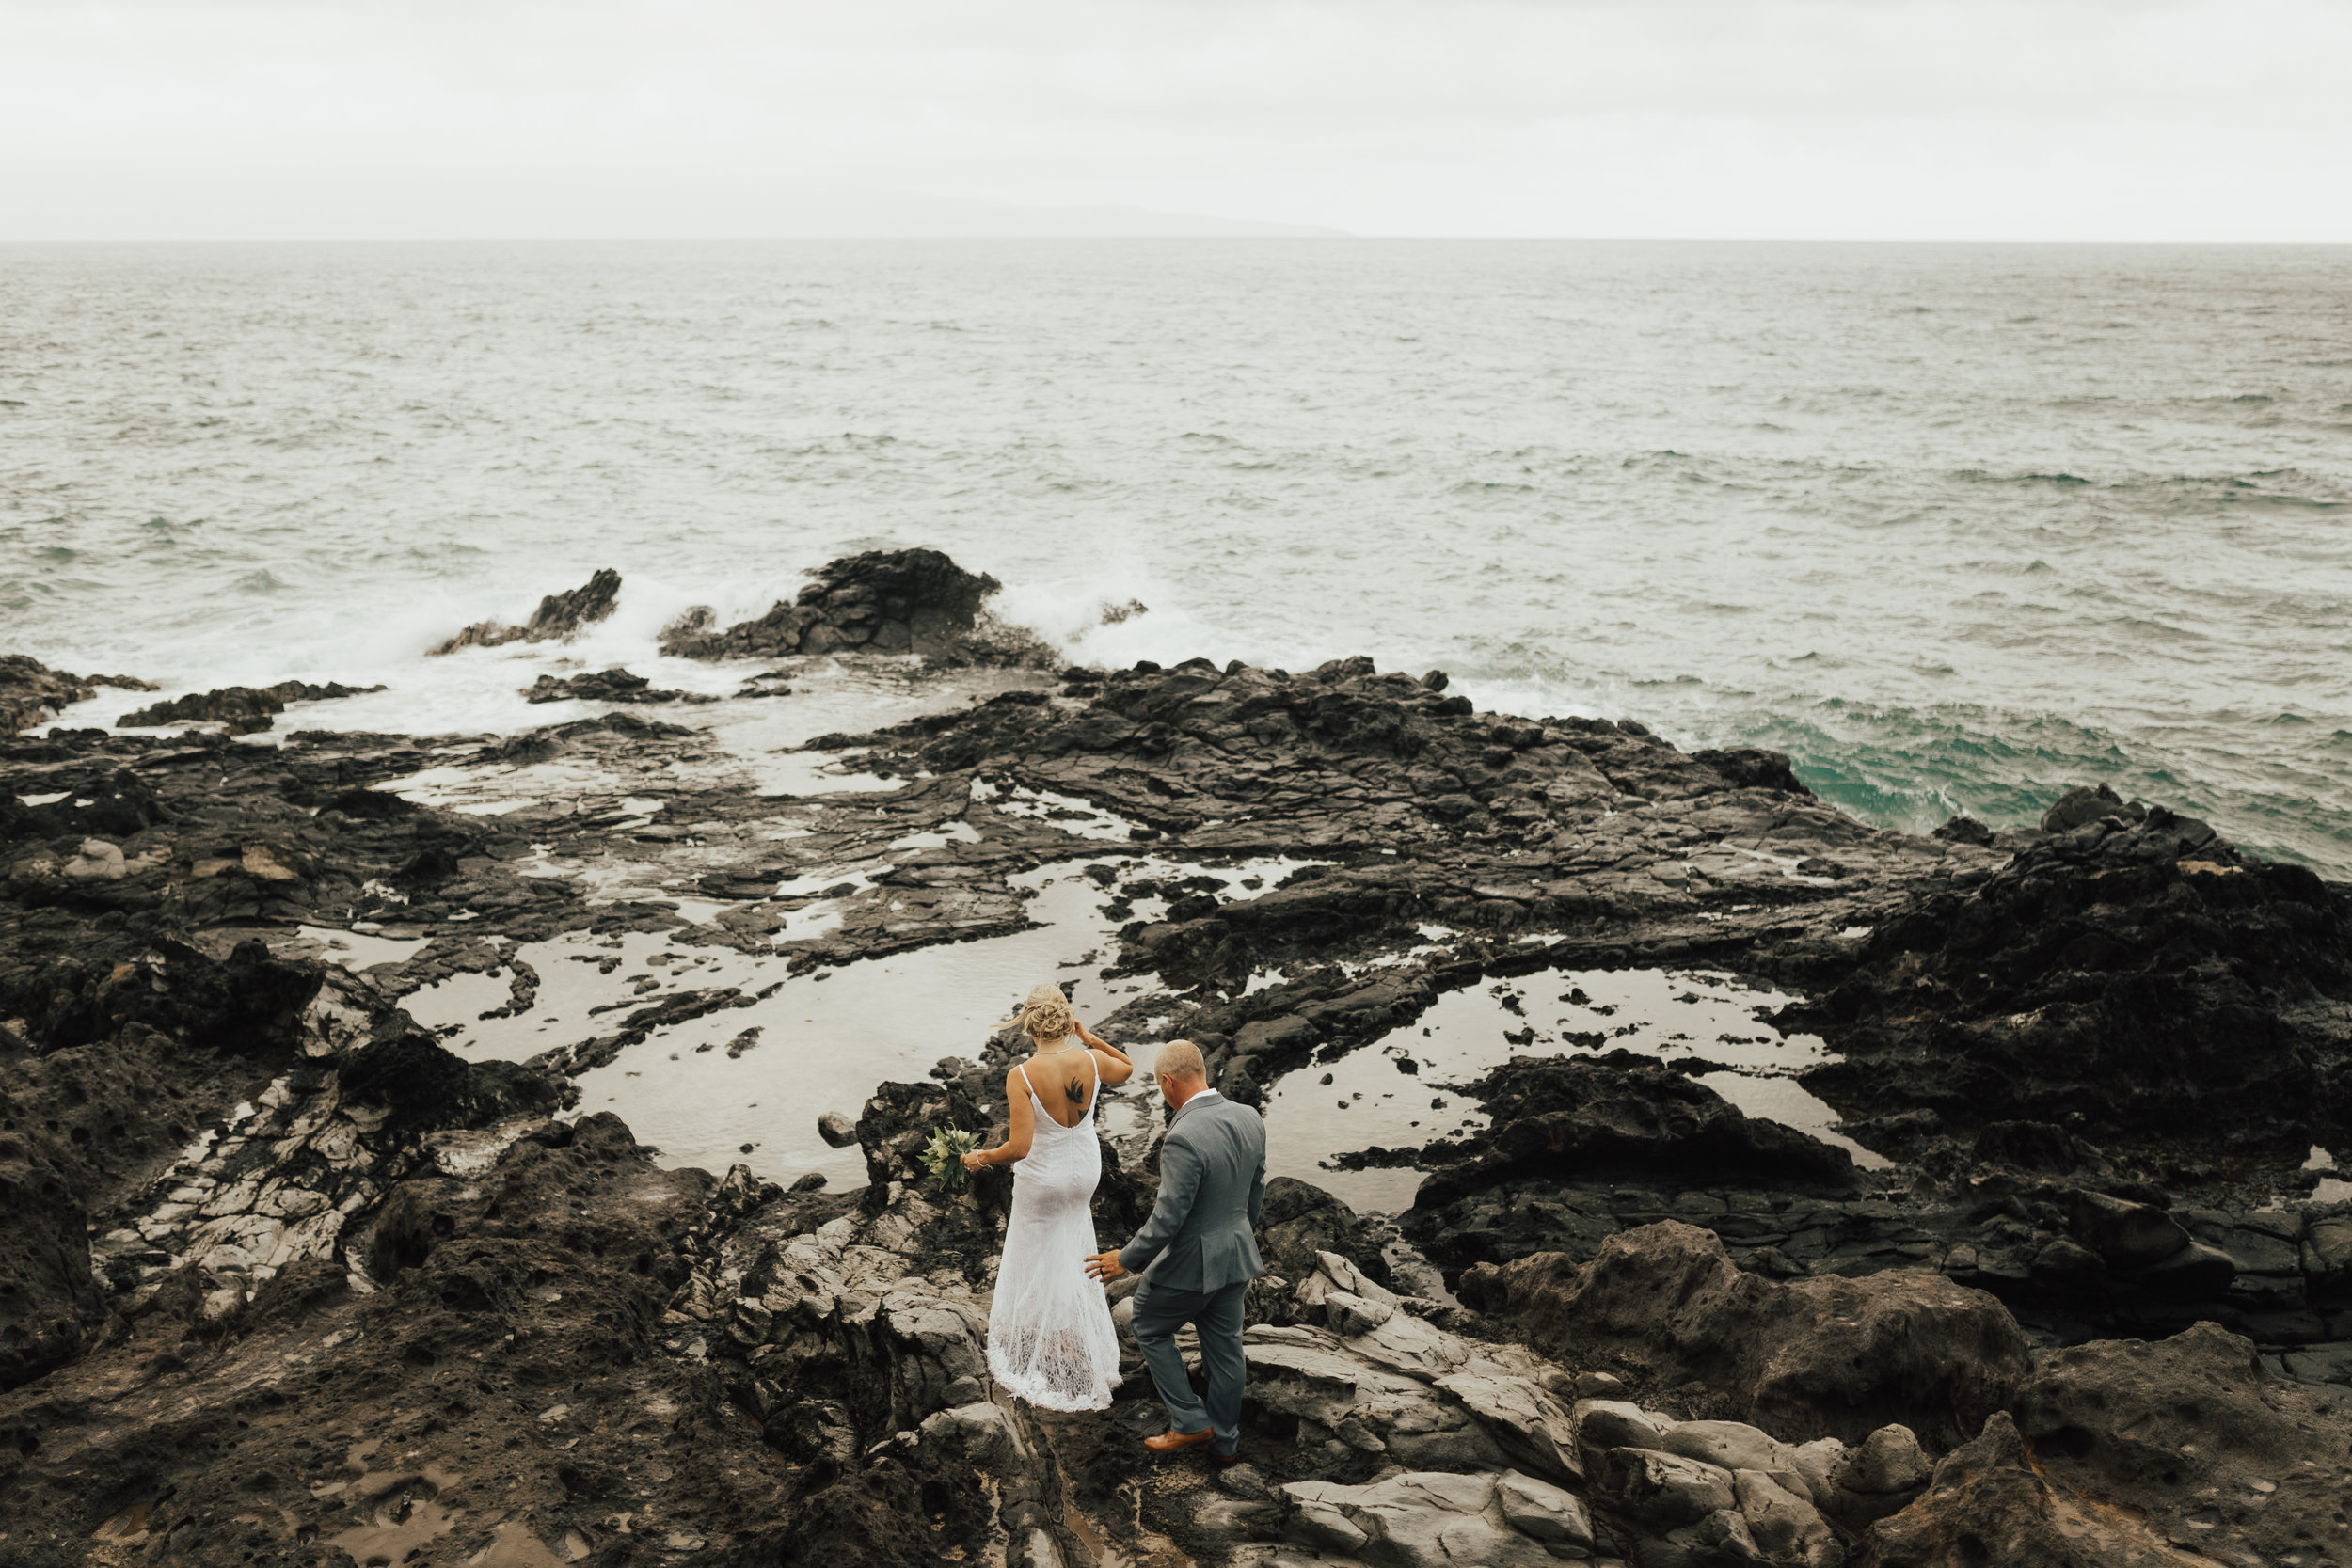 hawaiiweddingphotographer.jpg